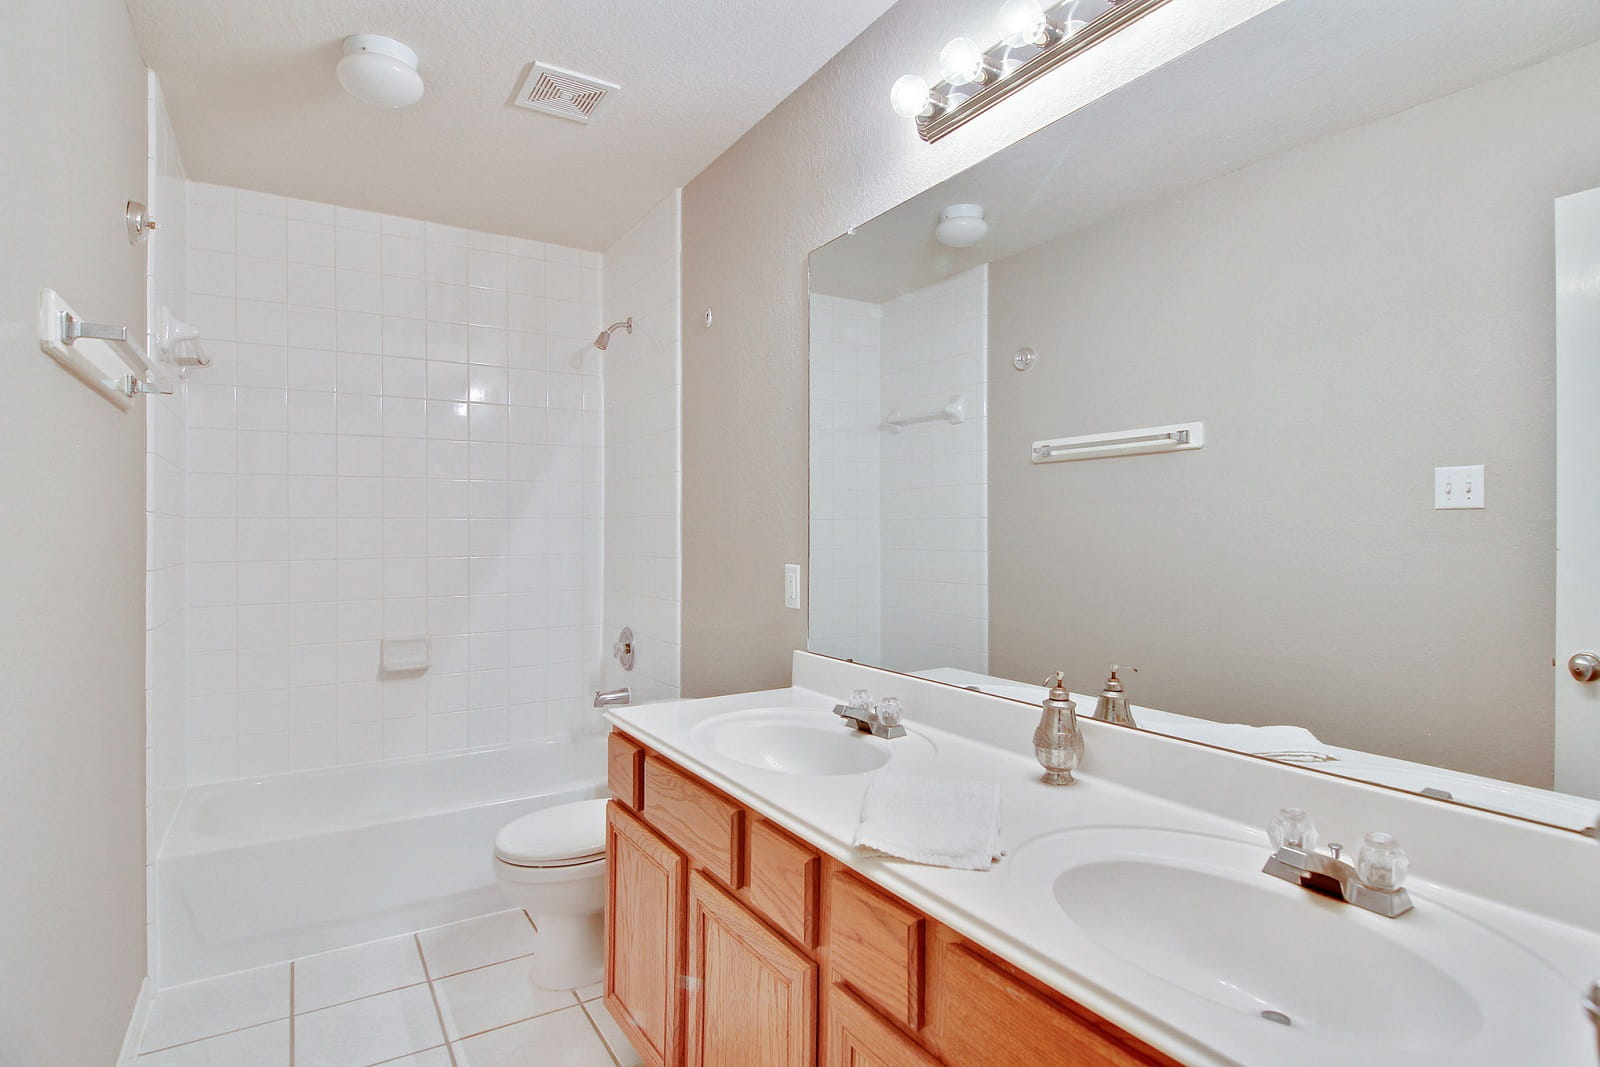 Real Estate Photographers in Conroe - TX - Bath View